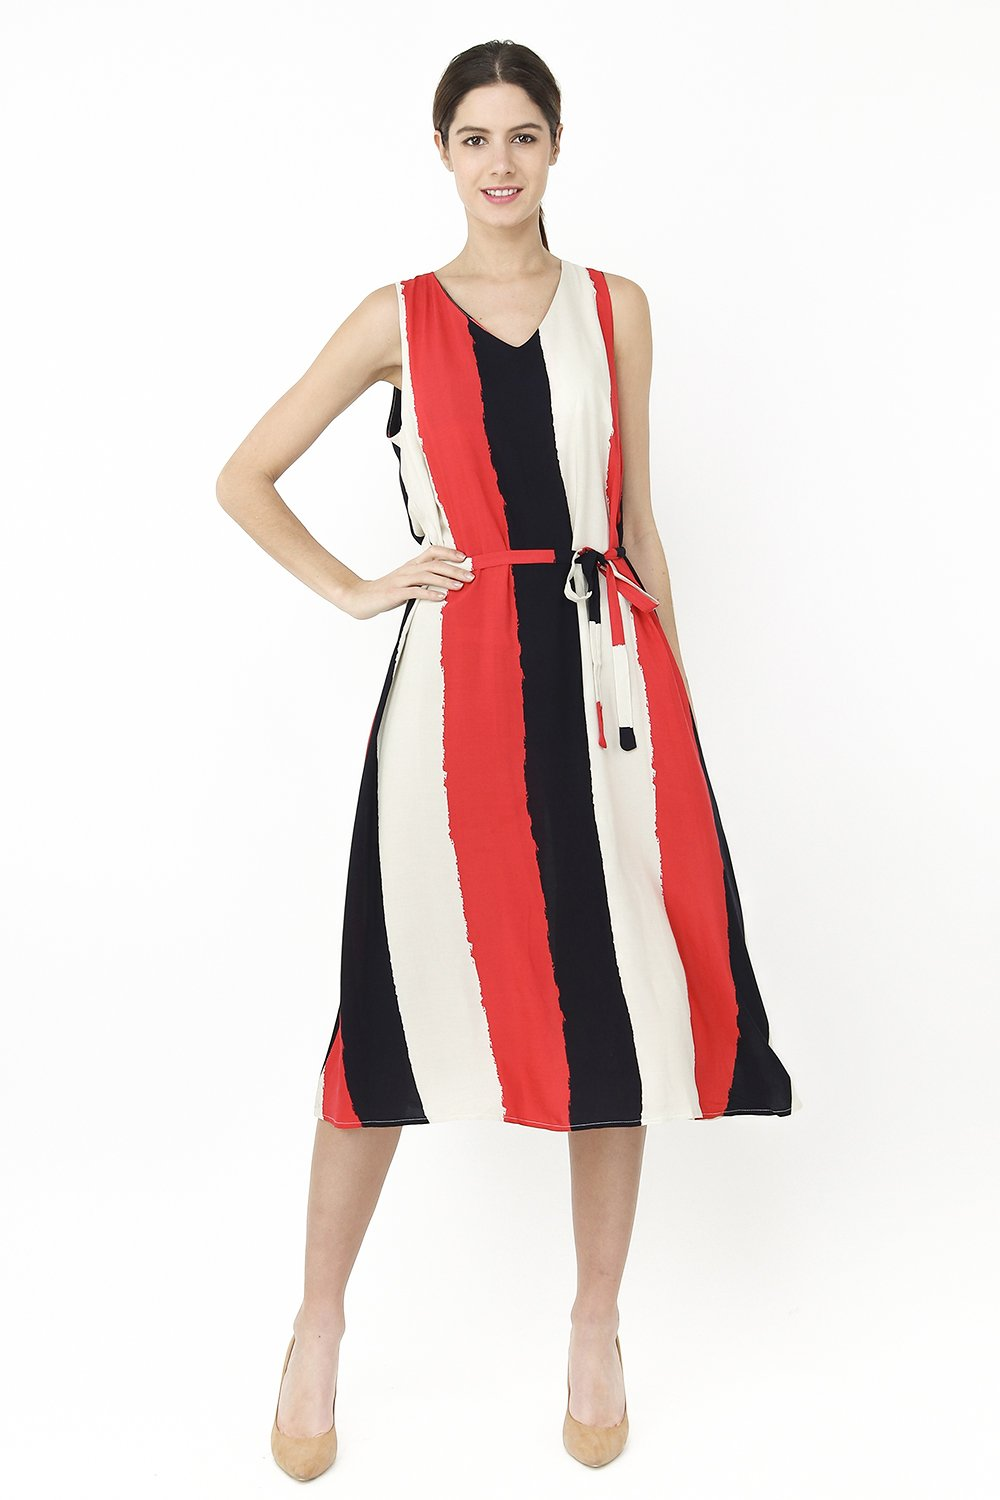 SLEEVELESS TRI-COLORS V-NECK LONG DRESS WITH BELT